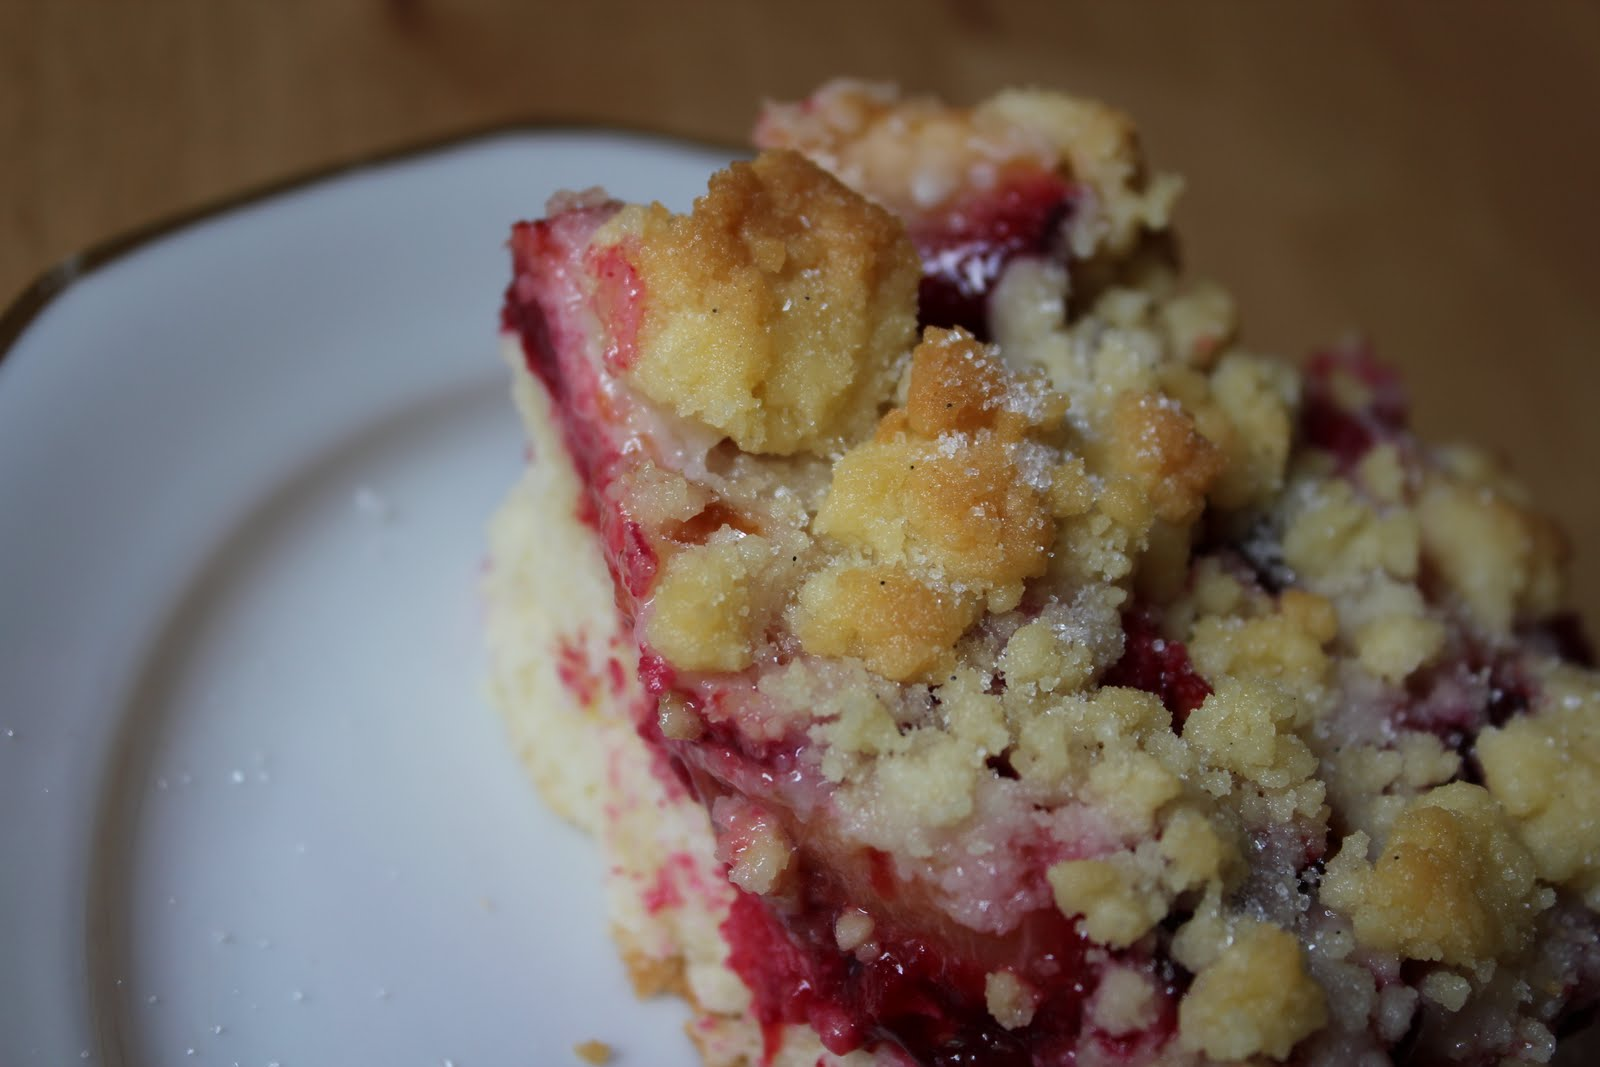 plum crumble cake.